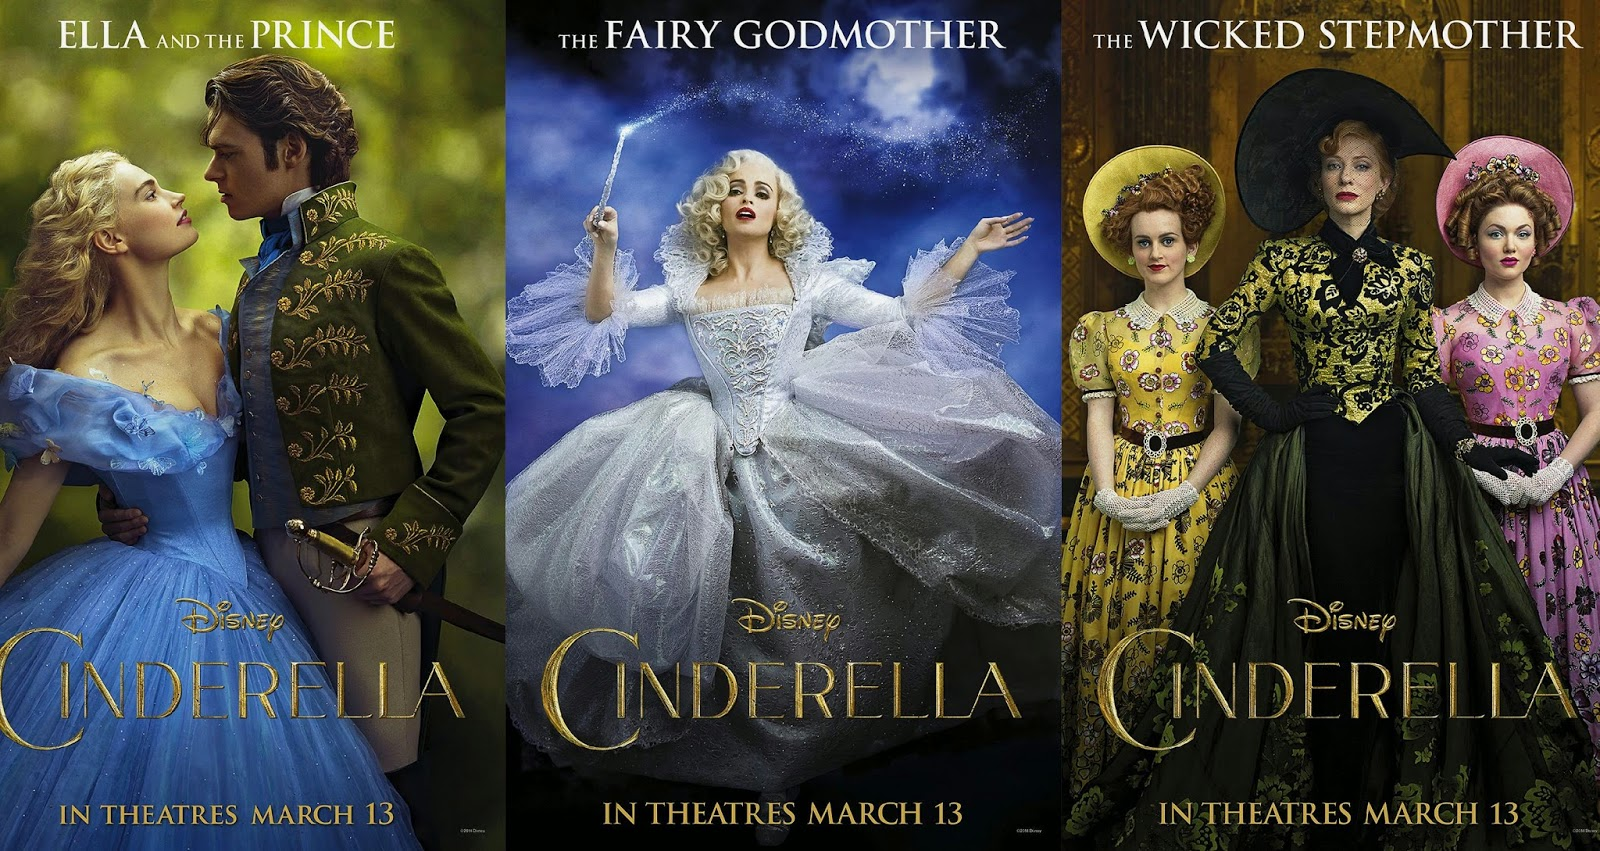 Cinderella 2015 Movie Ella and Princess Wallpapers